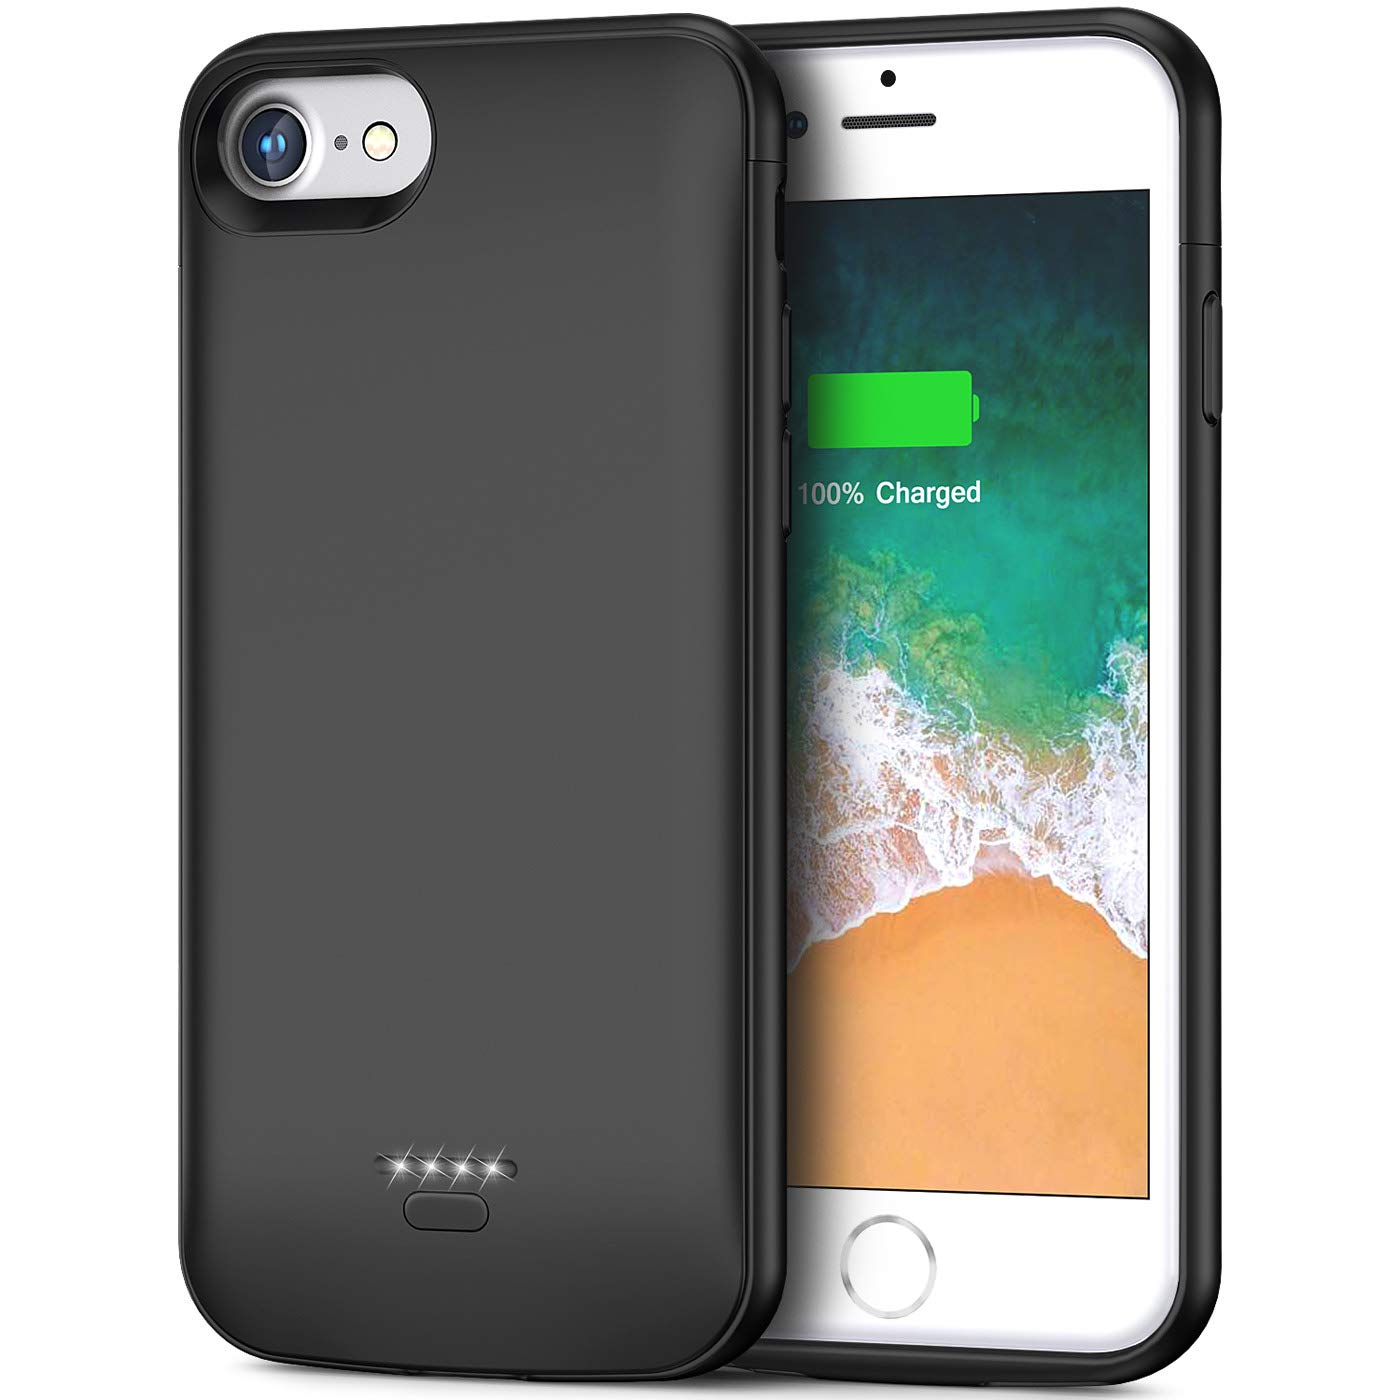 Battery Case for iPhone 6 6s, 4000mAh Portable Protective Charging Case for iPhone 6 6s(4.7 inch) Extended Battery Charger Case-(Black) by Smiphee